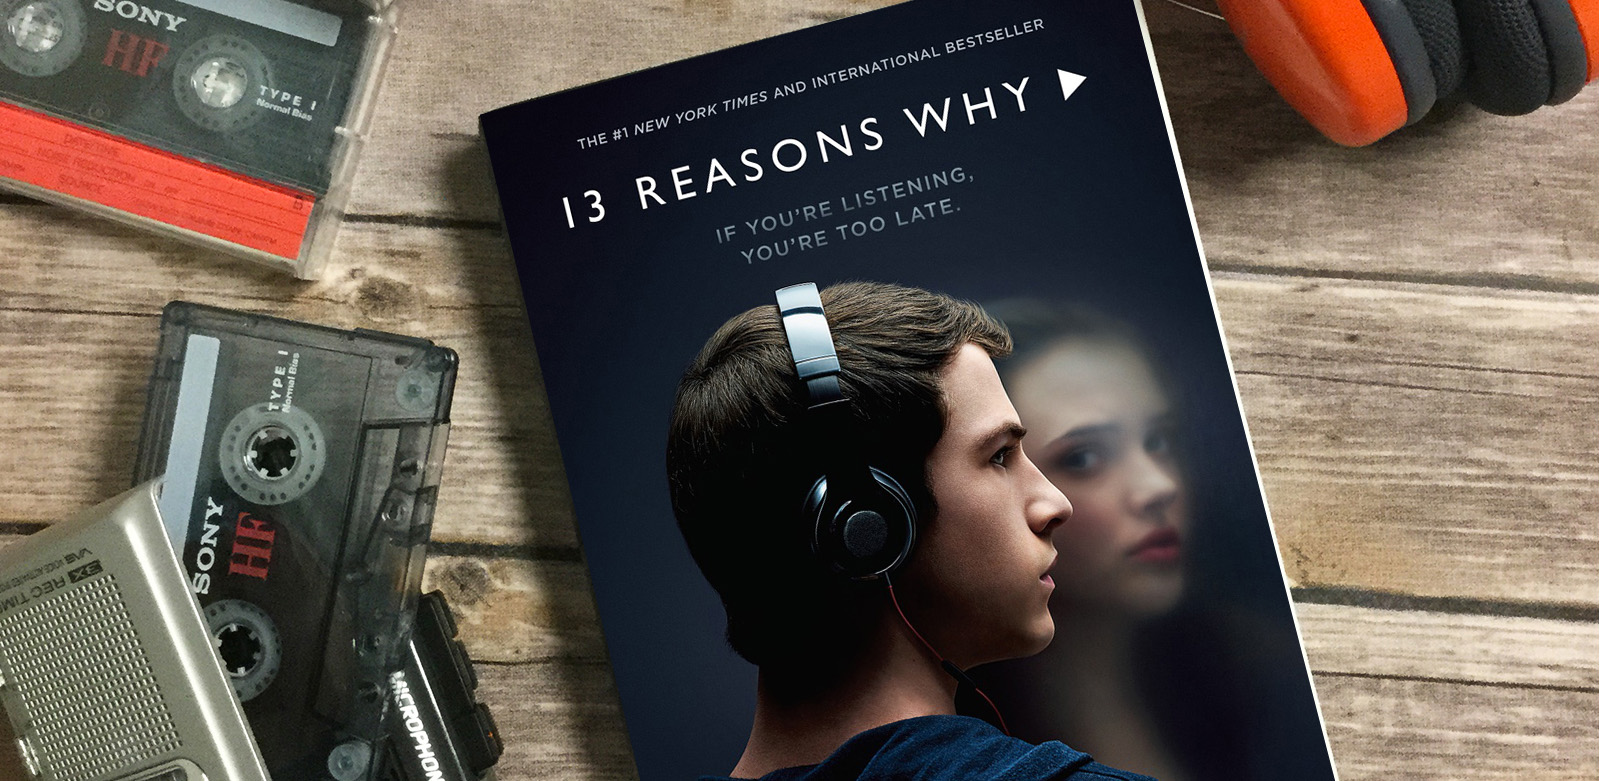 Colorado School District Briefly Banned '13 Reasons Why' Book